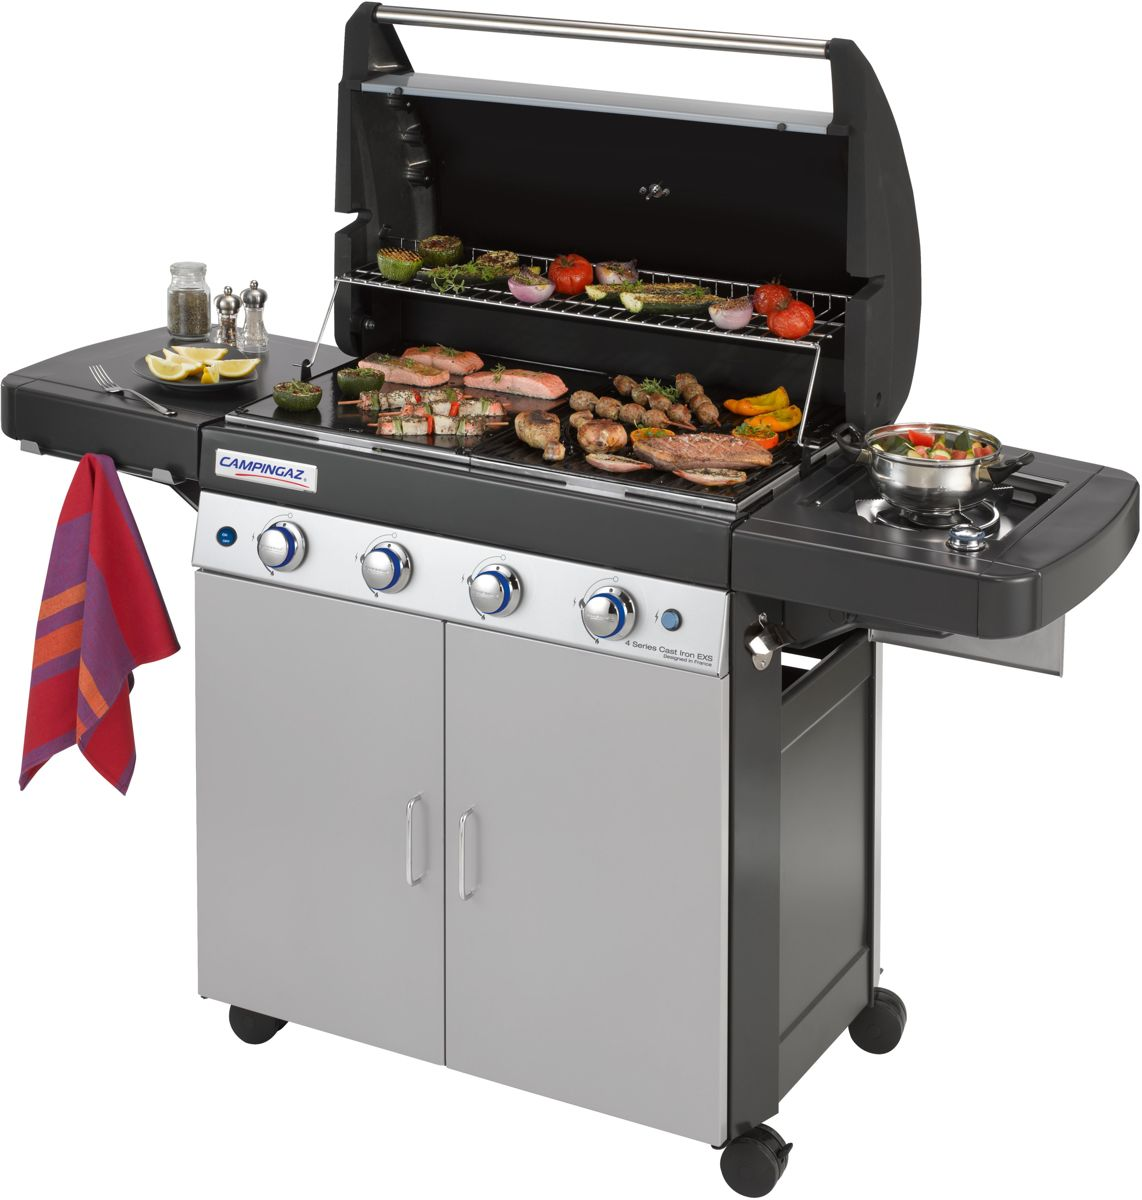 Campingaz 4 Series Cast Iron EXS Gasbarbecue